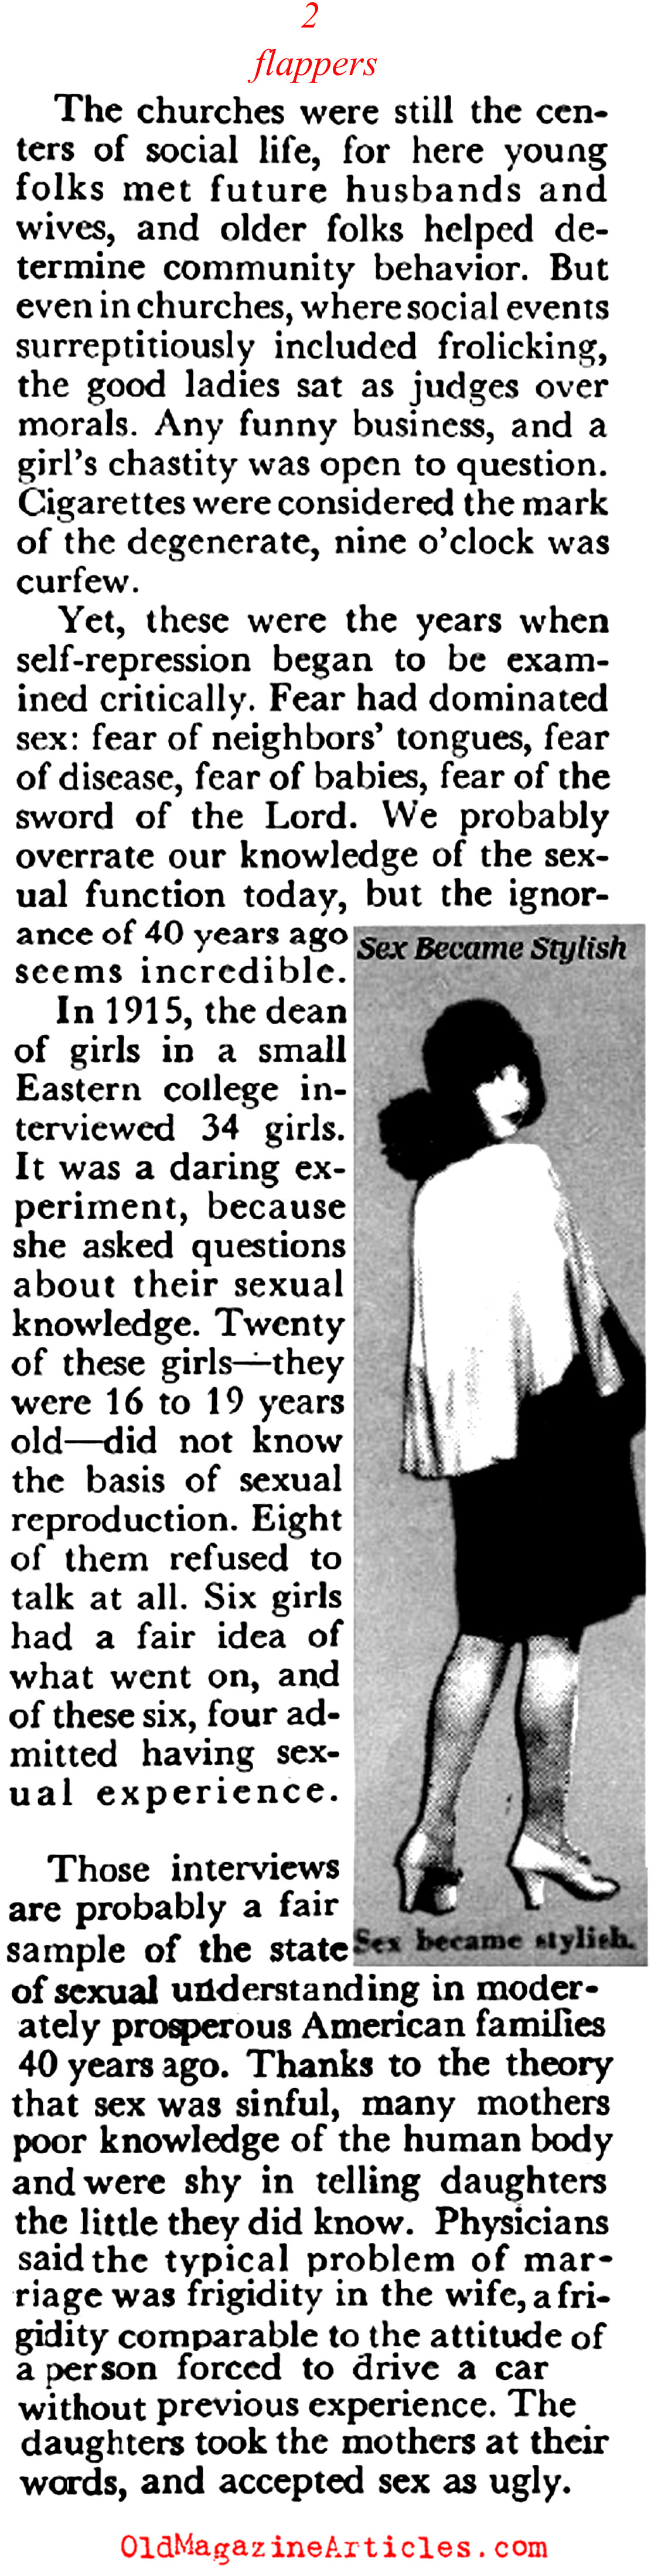 Flappers Altered the Sexual Mores of the Nation (Coronet Magazine, 1955)